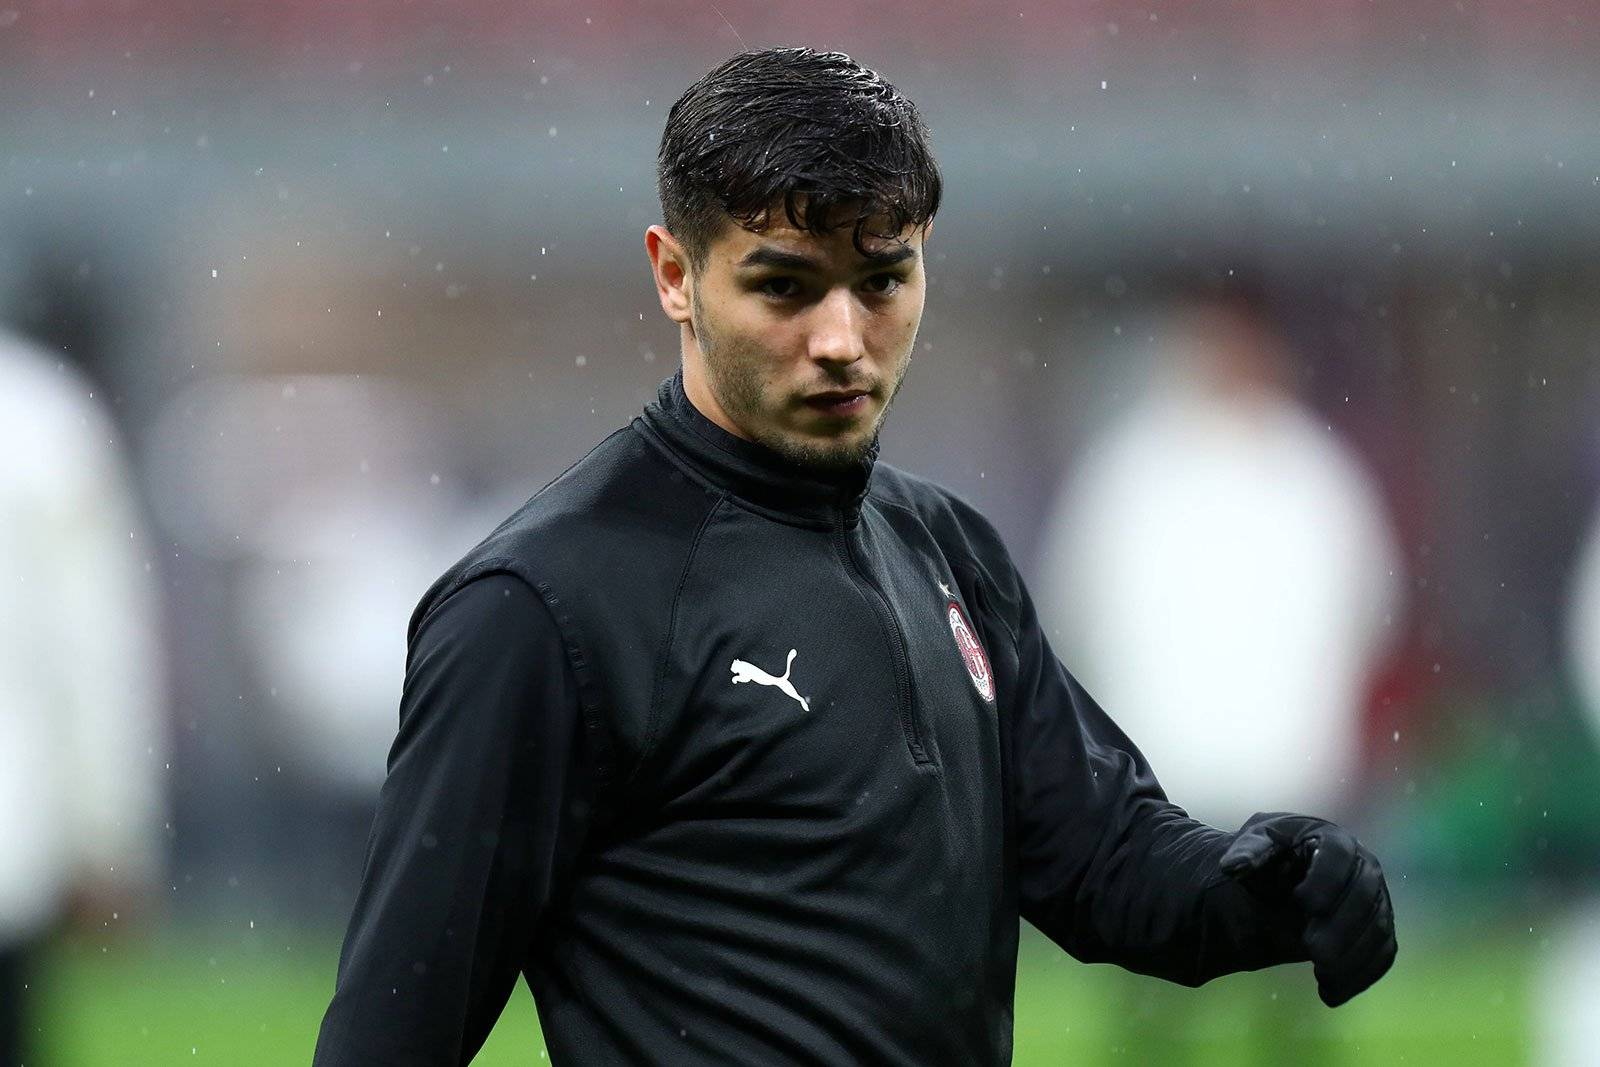 Real Madrid and AC Milan close to deal for Brahim Díaz 2